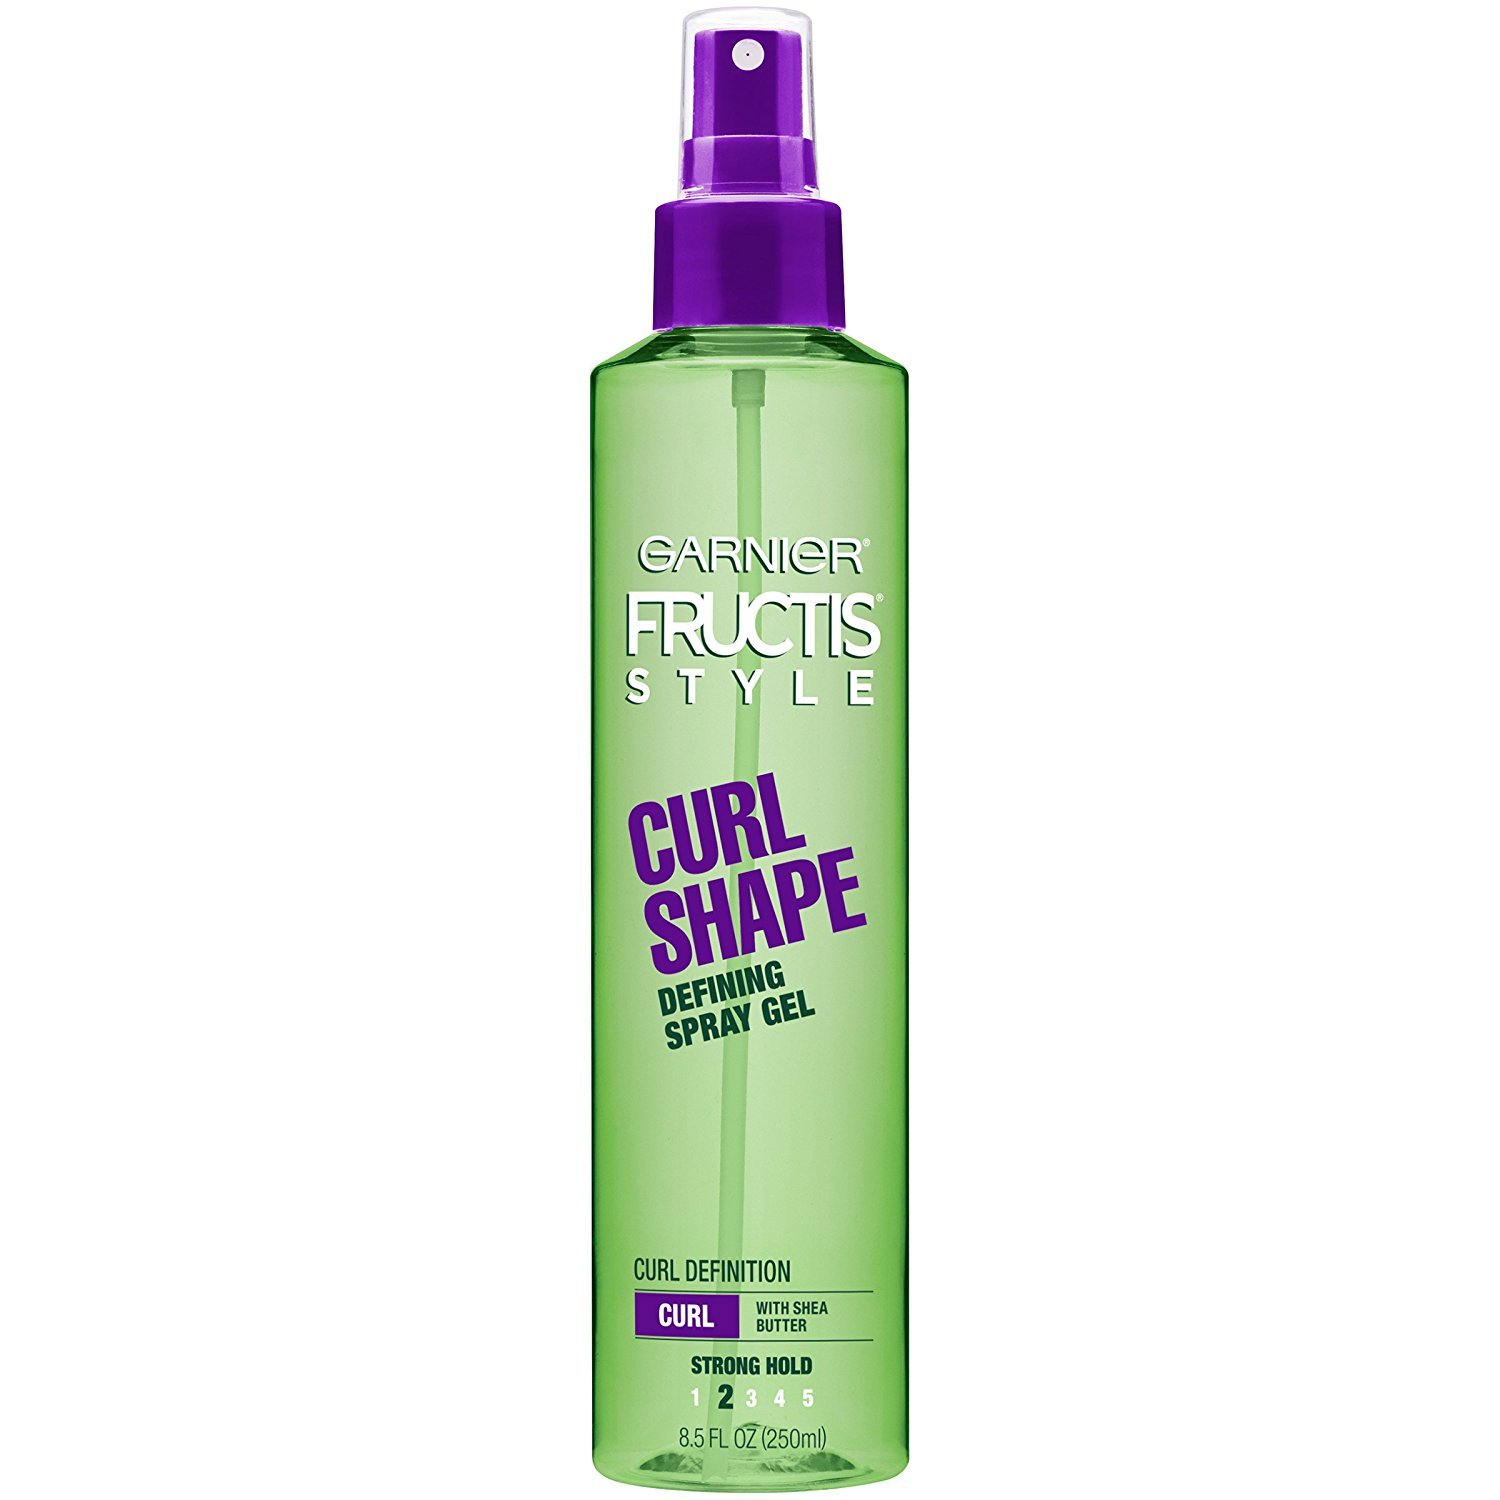 Fructis Curl Shpe Spry Ge Size 8.5z Garnier Fructis Strong C